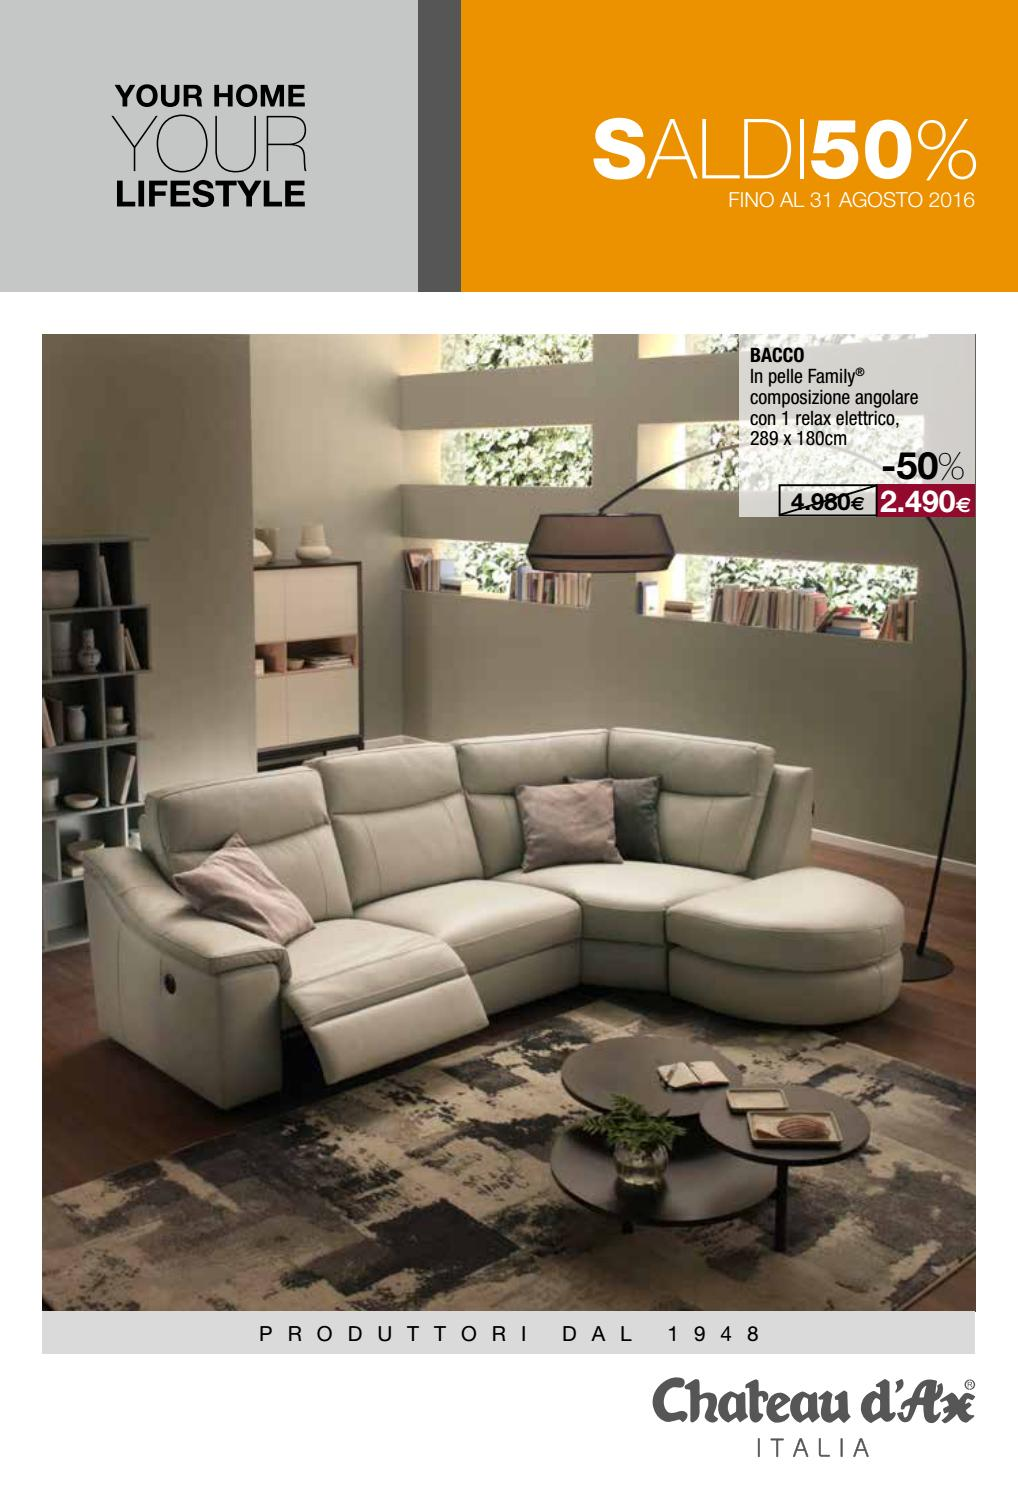 Chateau d ax catalogue by fino issuu for Chatodax prezzi divani